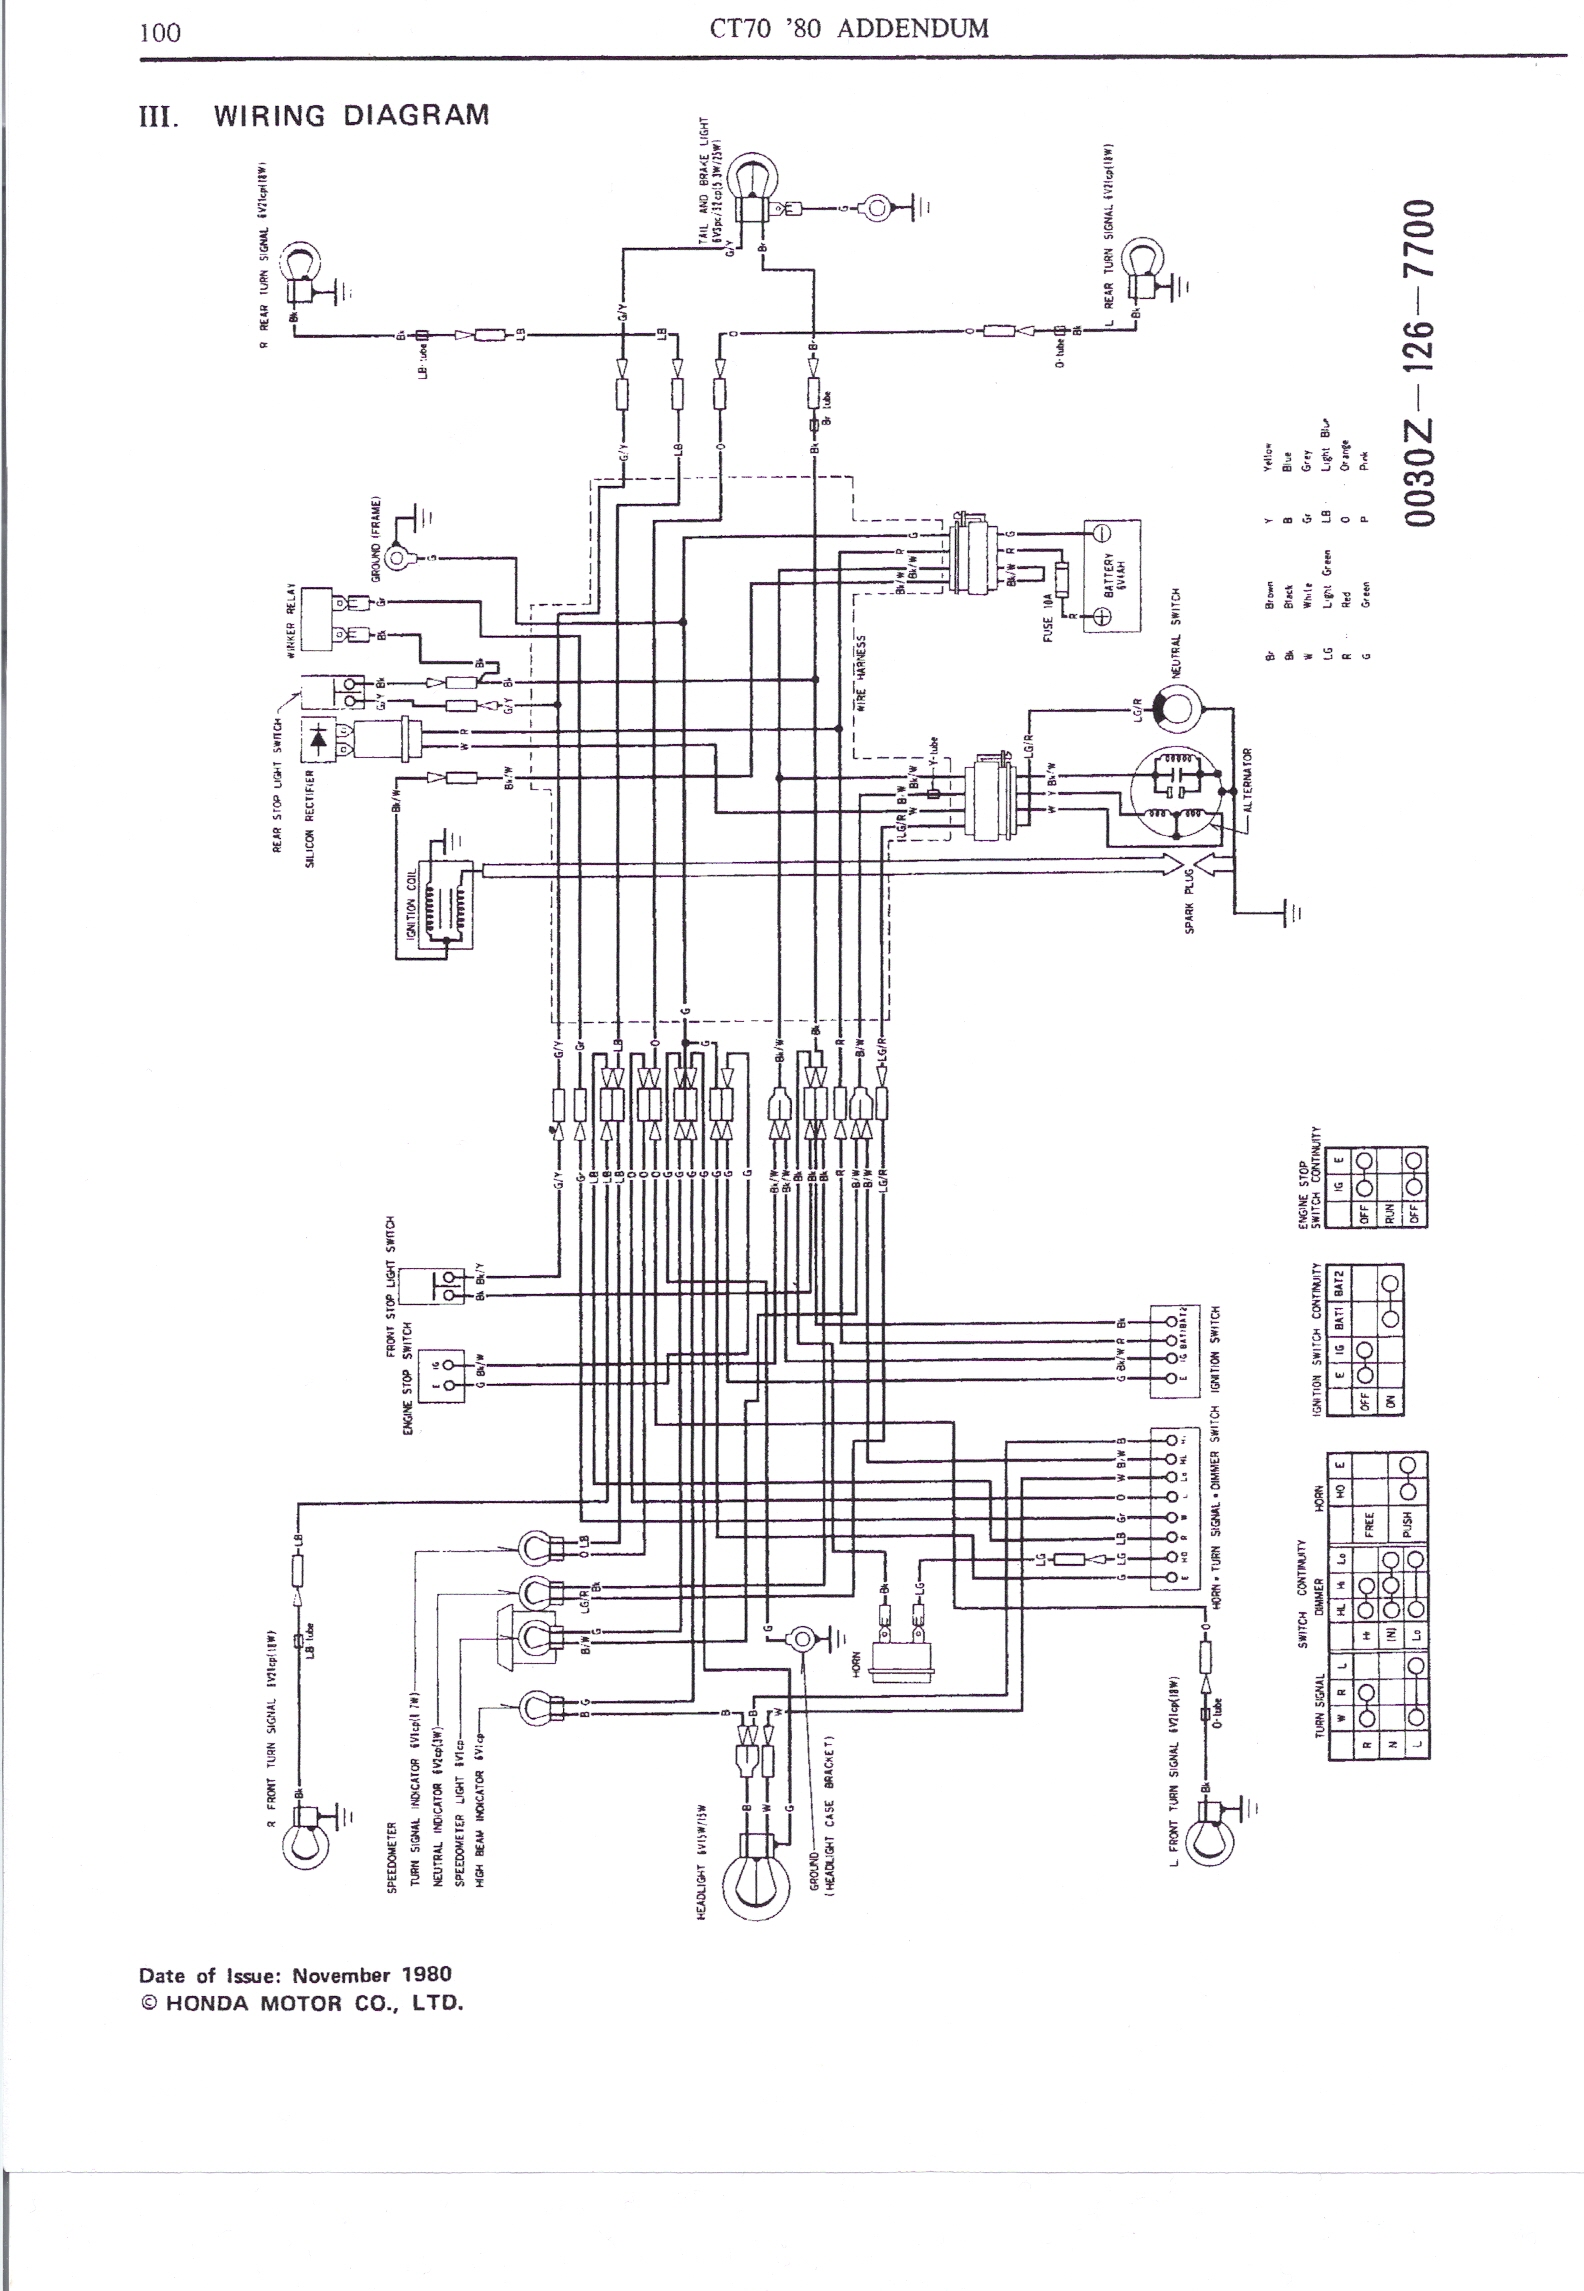 1993 honda ct70 wiring diagram